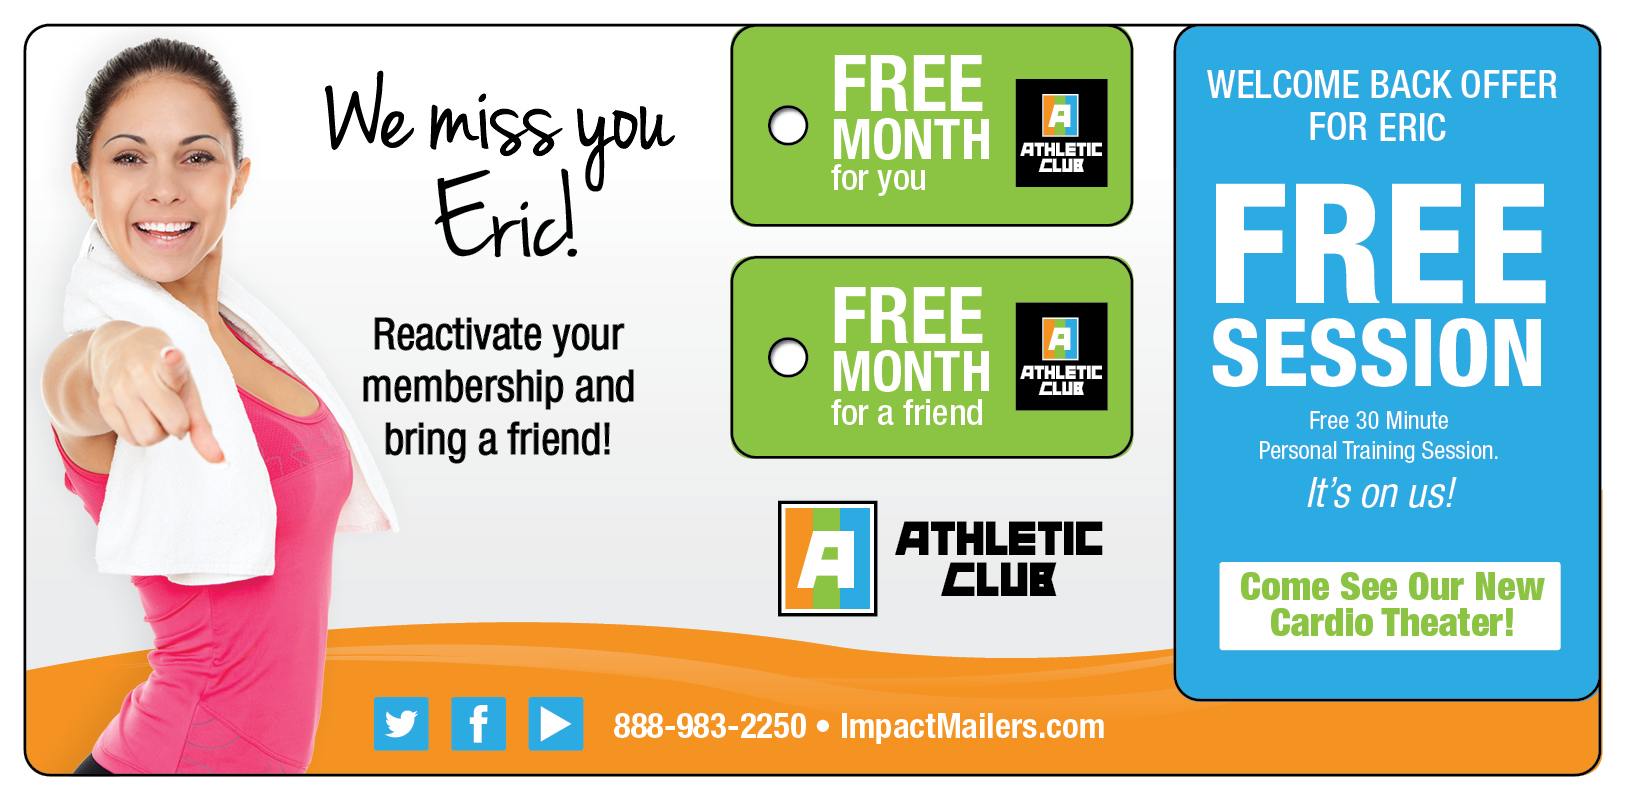 Fitness Club Marketing Reactivation Mailing